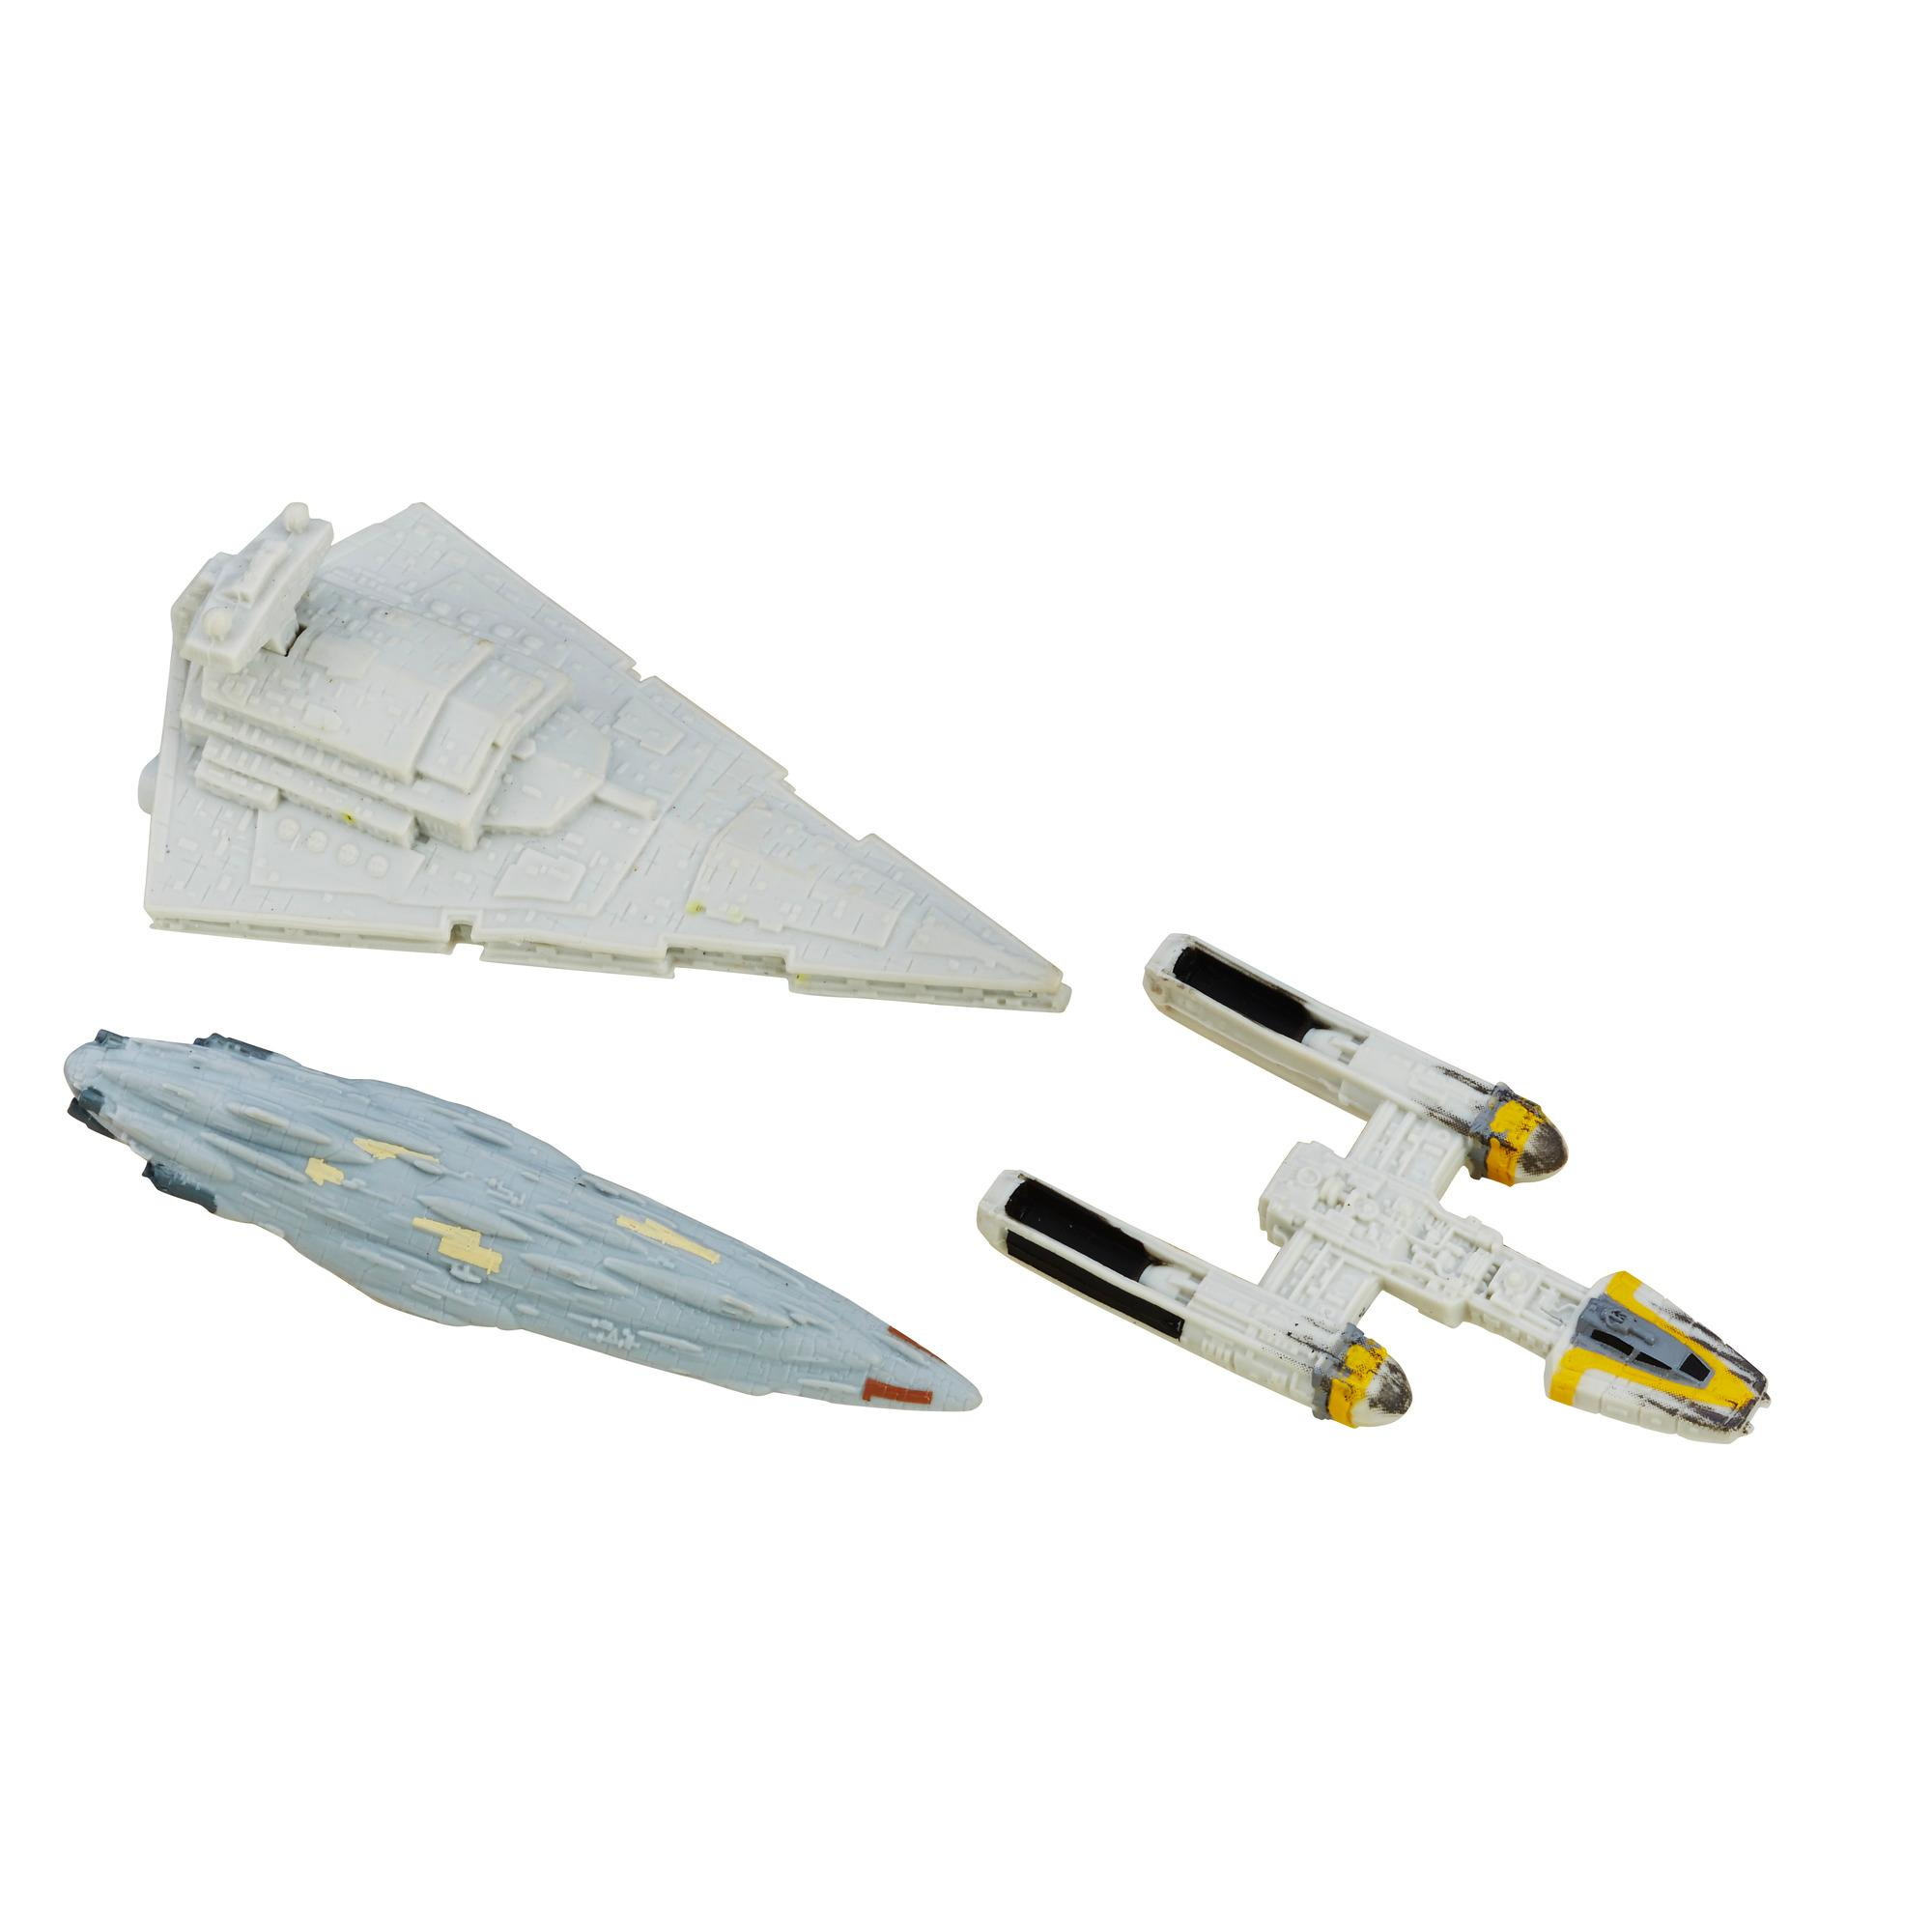 Star Wars Rogue One Micro Machines Imperial Attack 3 Pack